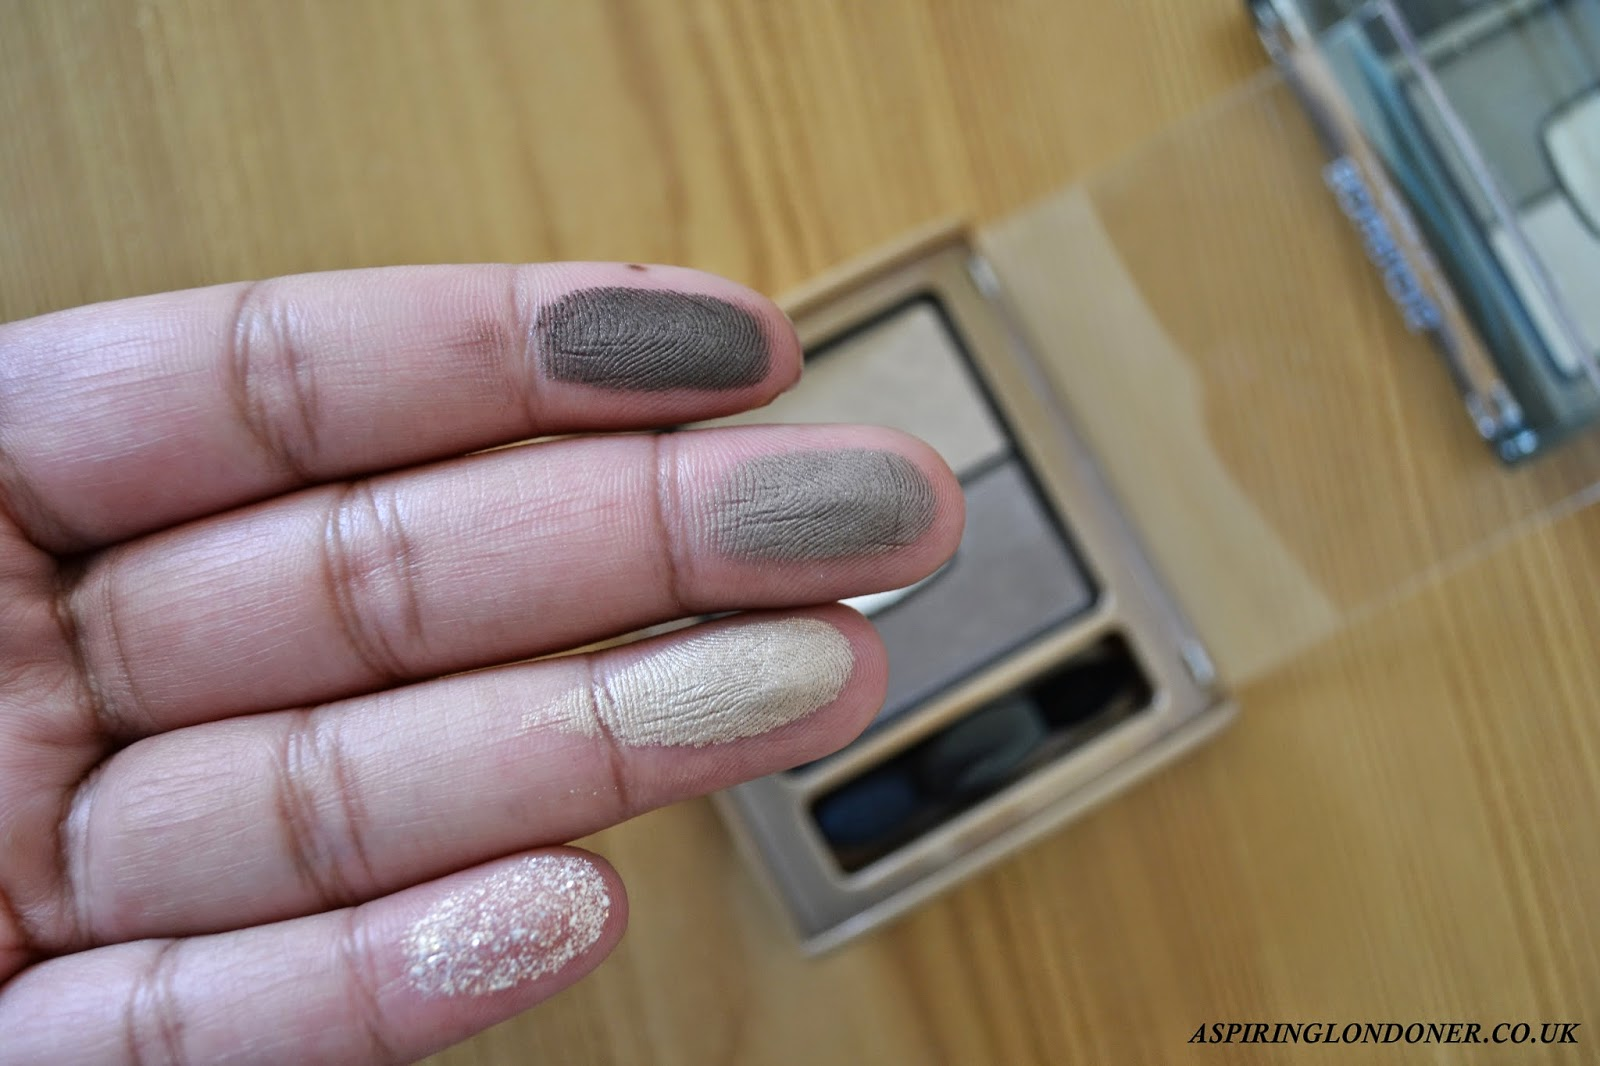 Bourjois Quad Smoky Stories Palette 04 Rock This Khaki Review Swatches - Aspiring Londoner